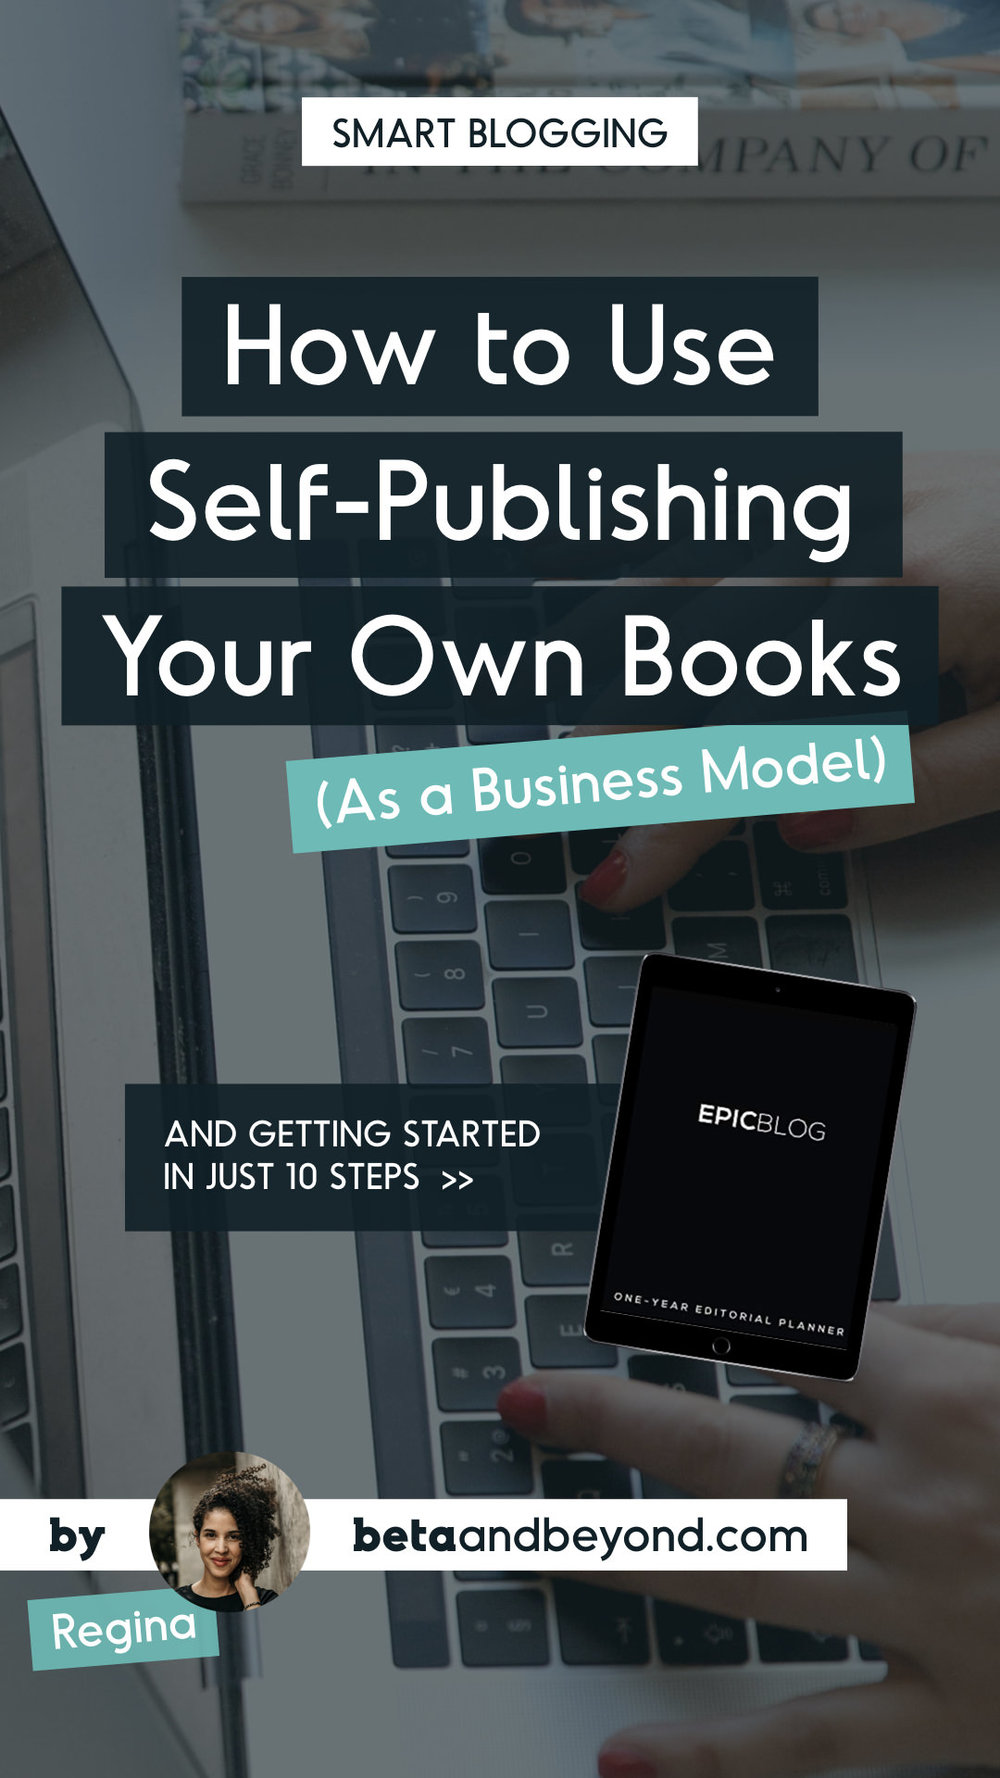 how to use self-publishing.001.jpeg